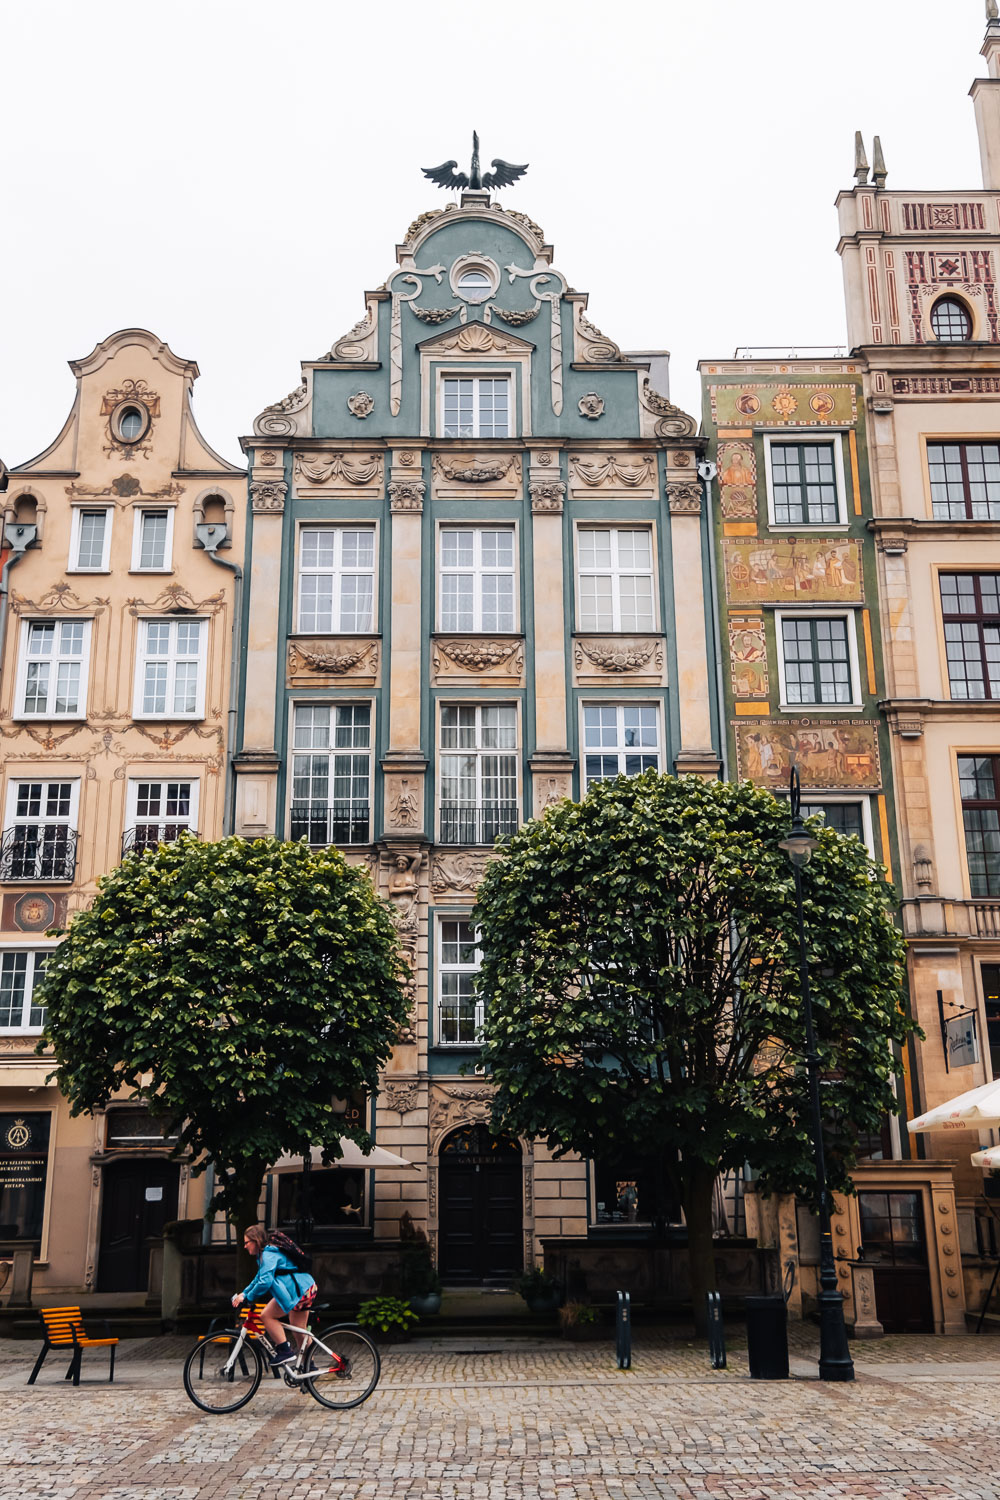 The 17th century style houses overlooking the Long Market street in Gdansk main town, Poland